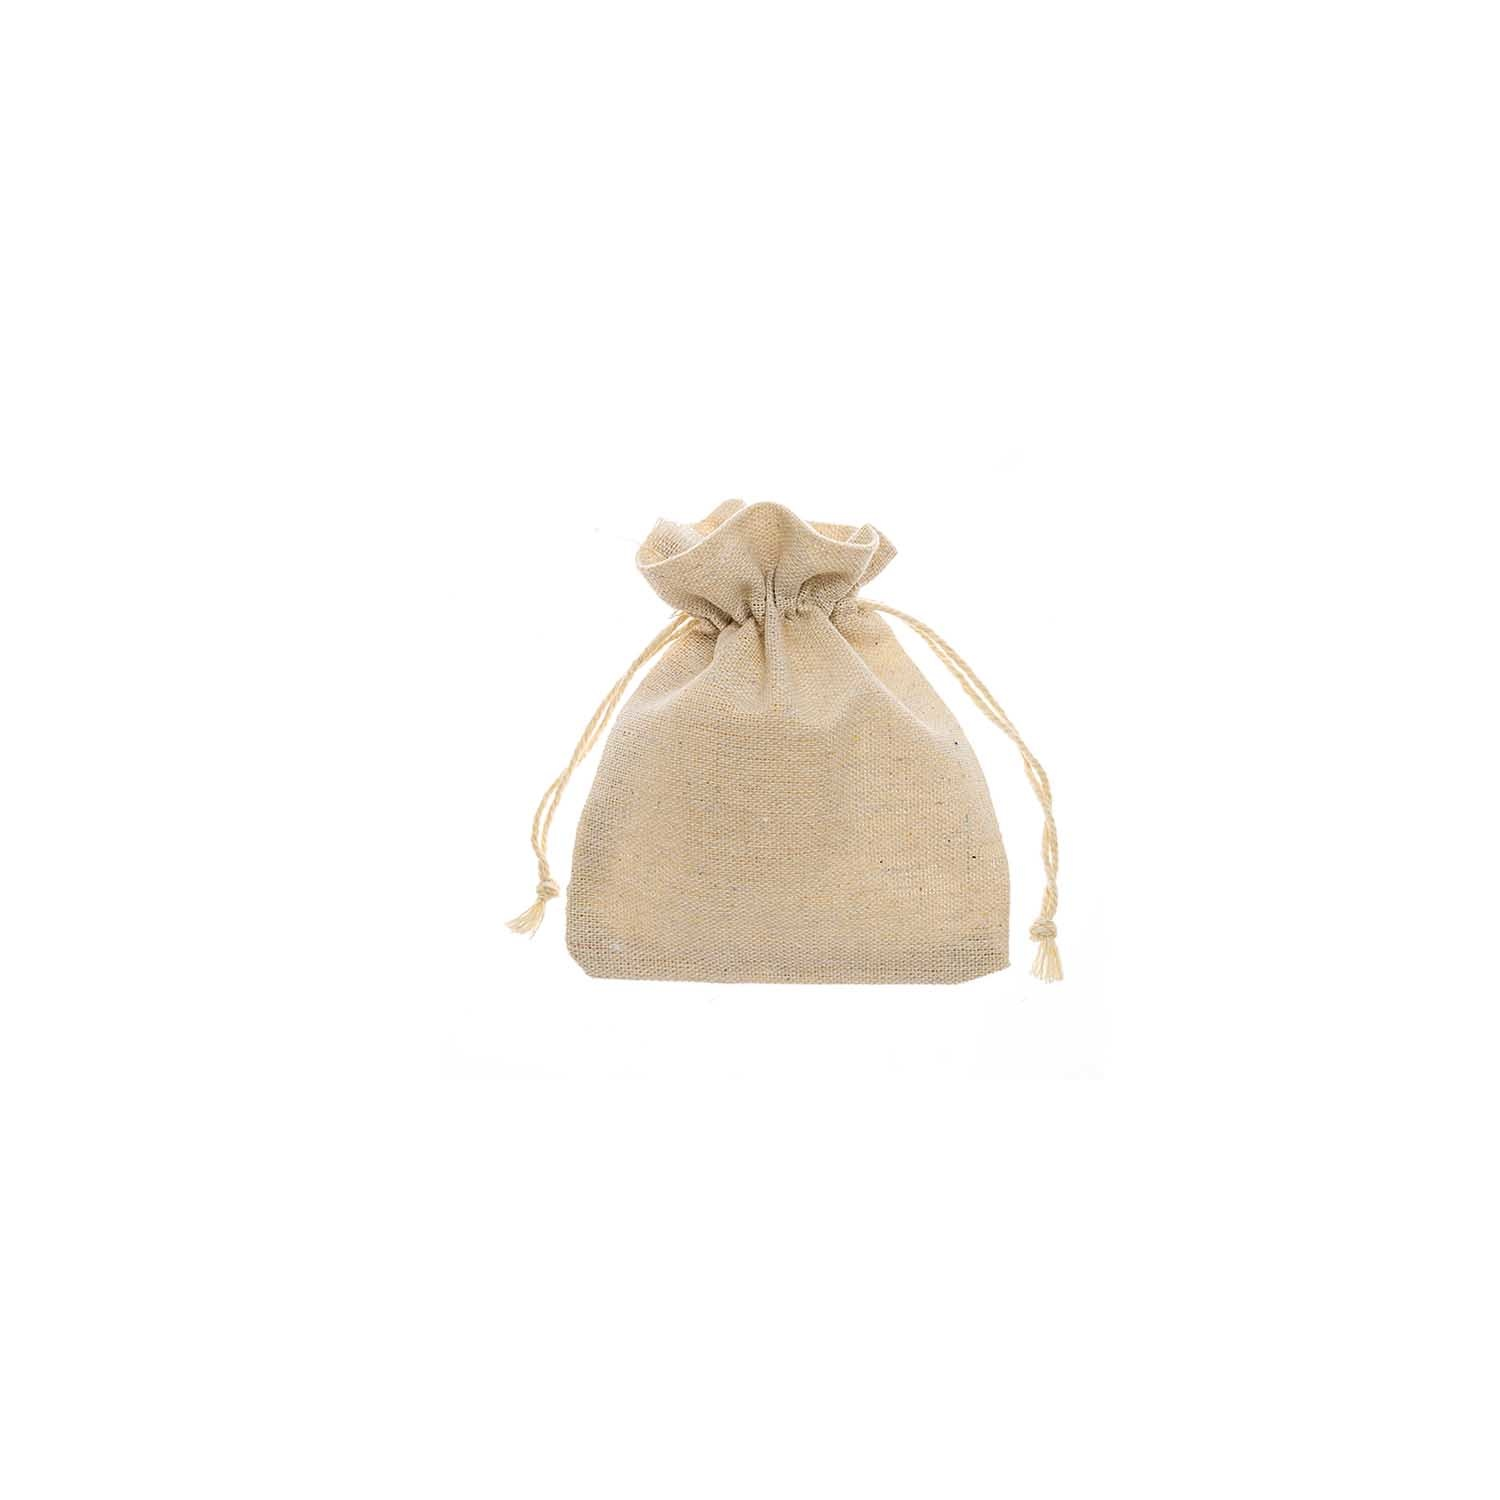 Rico NAY BAG JUTE LOOK NATURE, 10X13CM